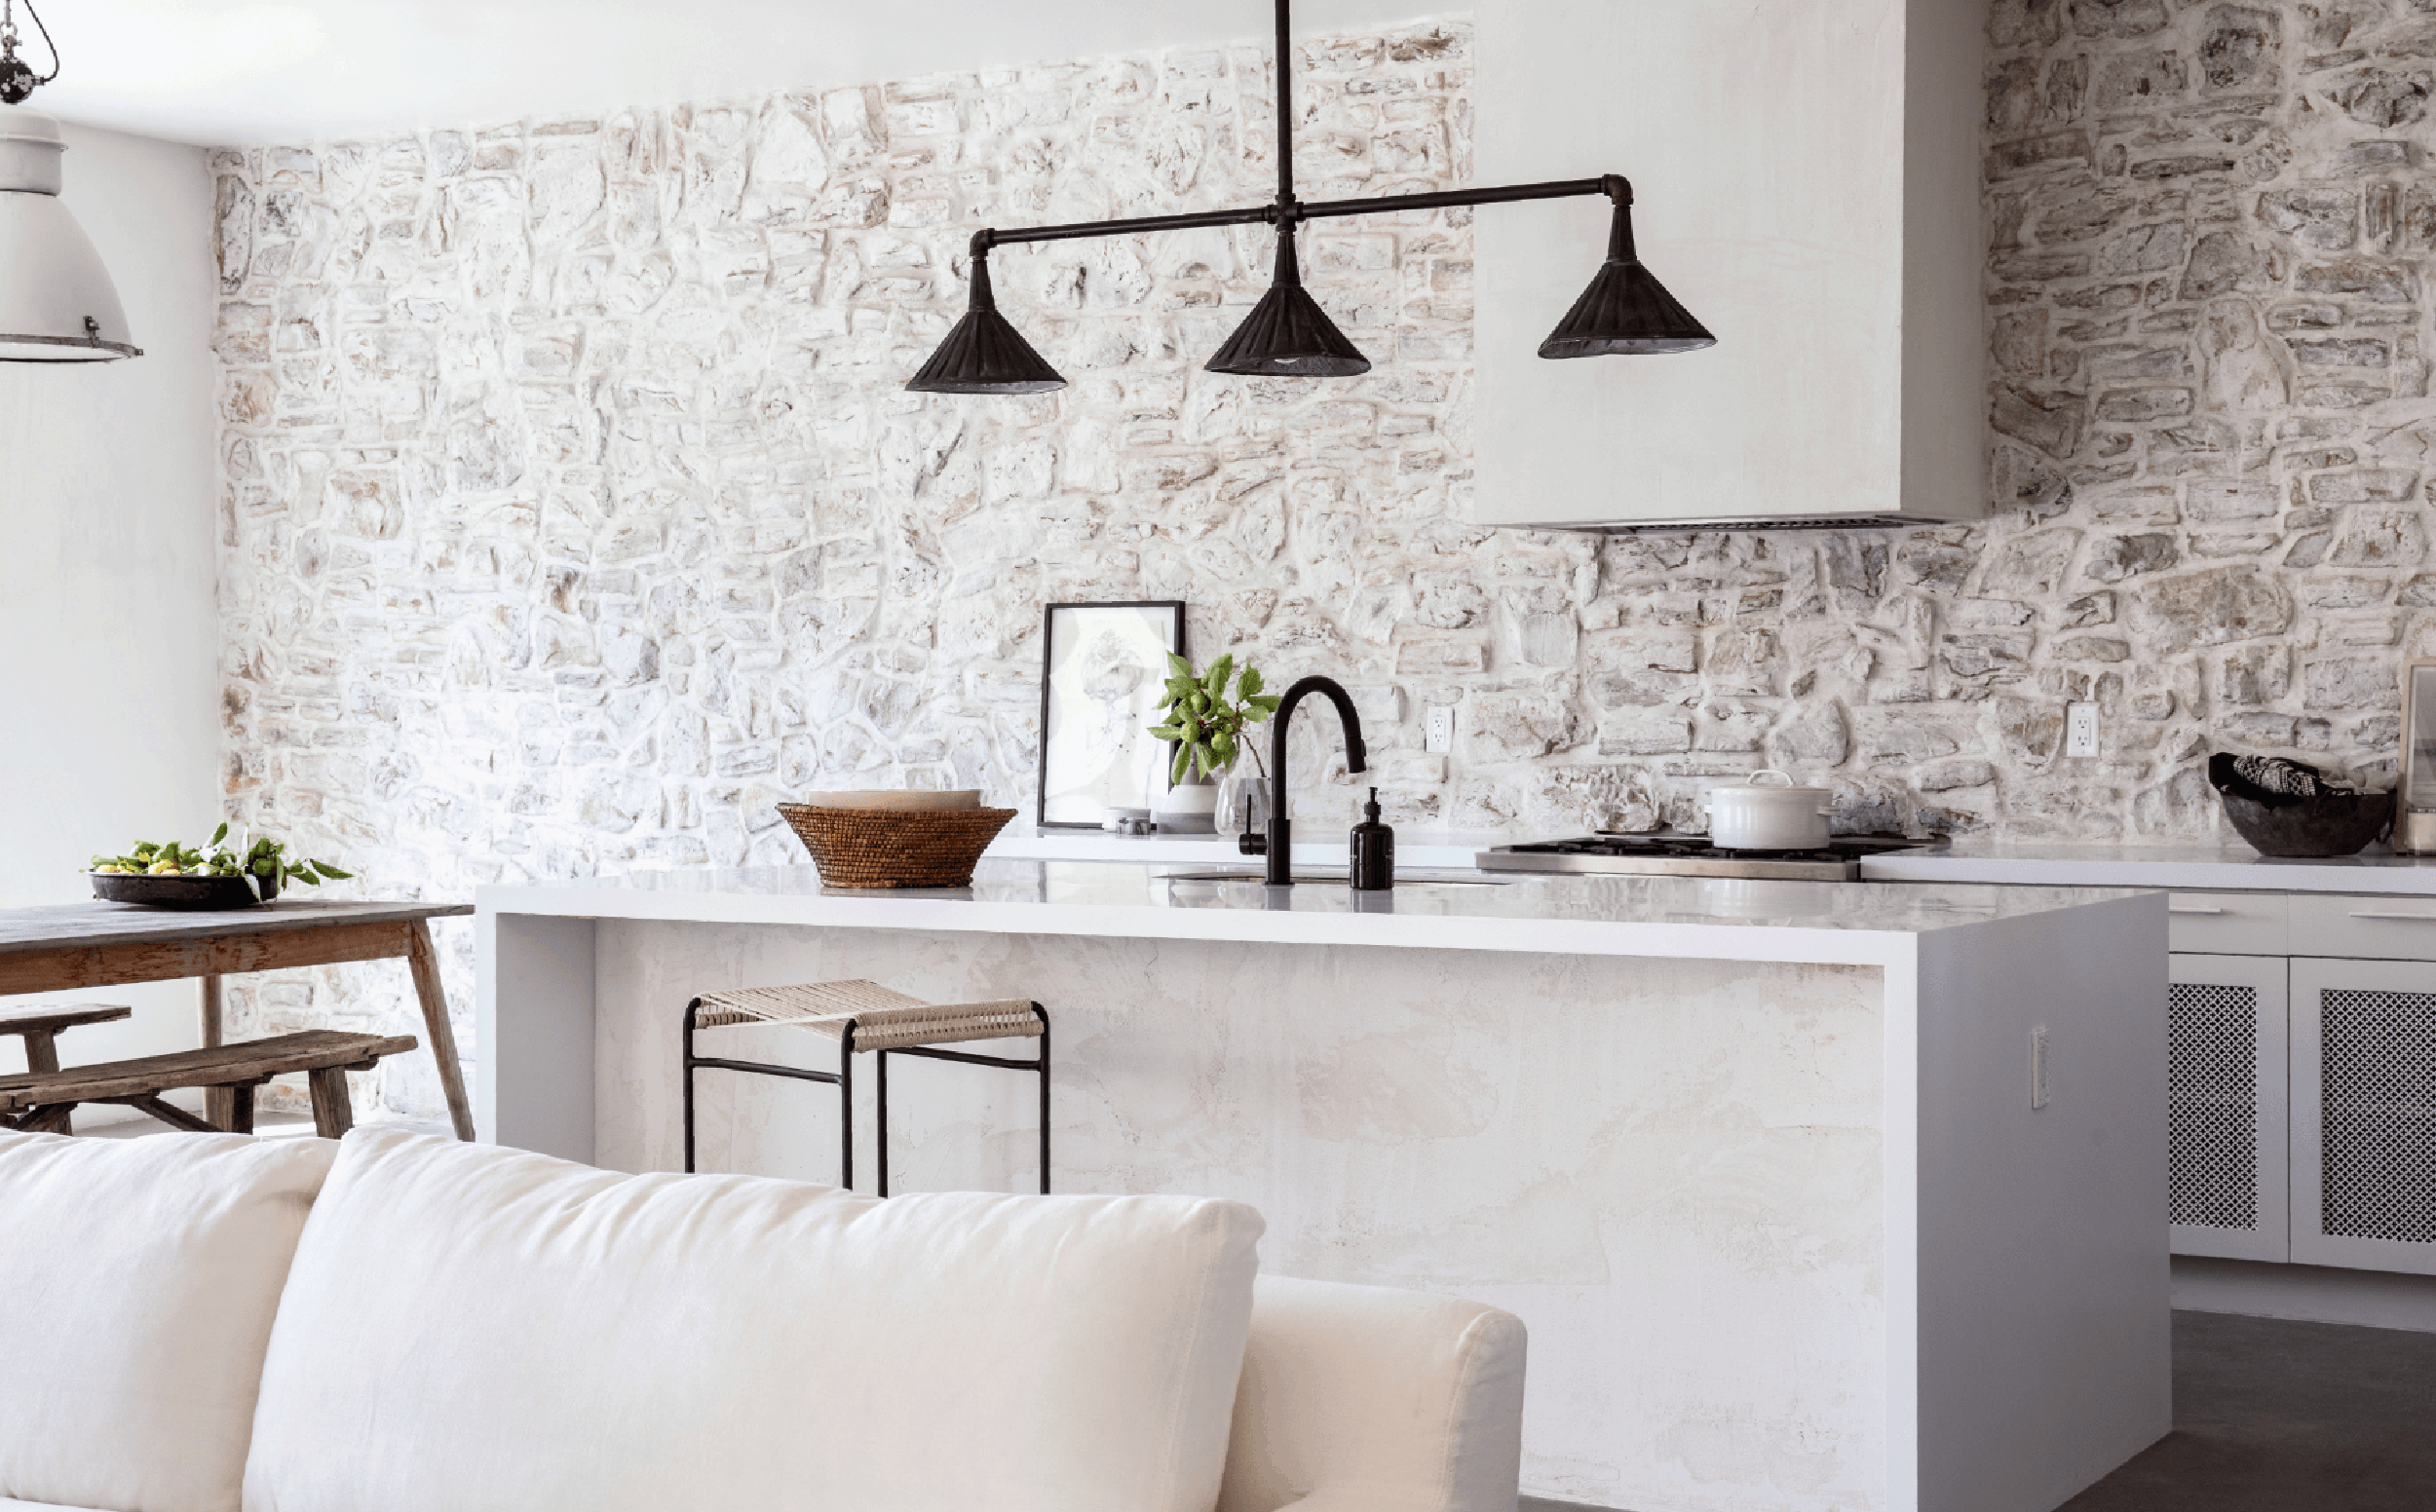 - The 9 Kitchen Trends We Can't Wait To See More Of In 2020 - Emily